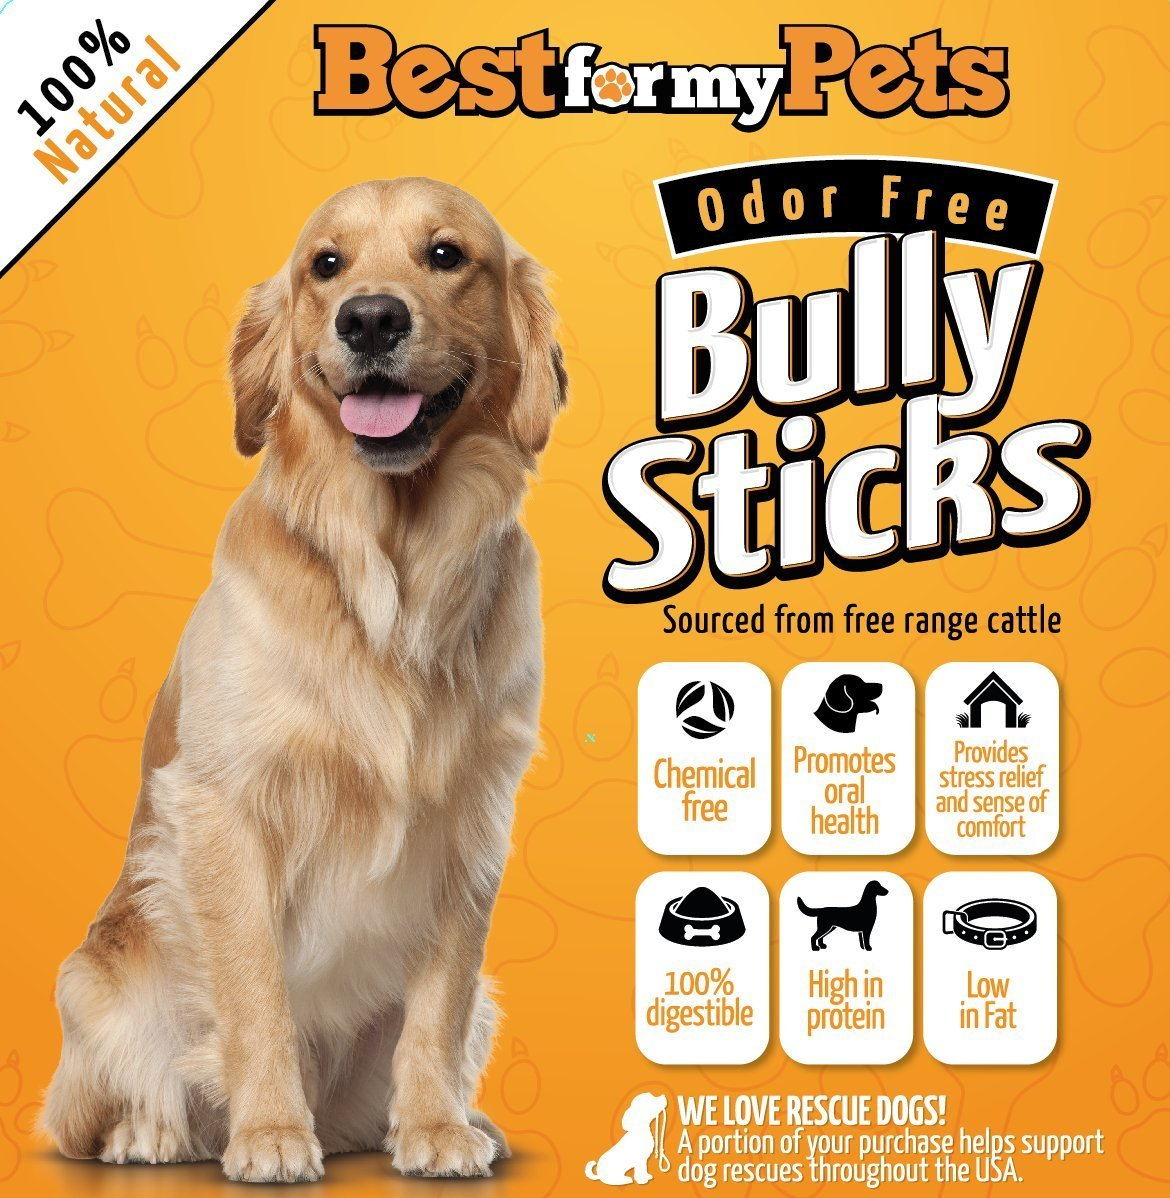 12-Inch Bully Sticks Odor-Free All Natural Dog Treats Fresh Long Lasting Chews by Best For My Pets, 8-Ounce Bag